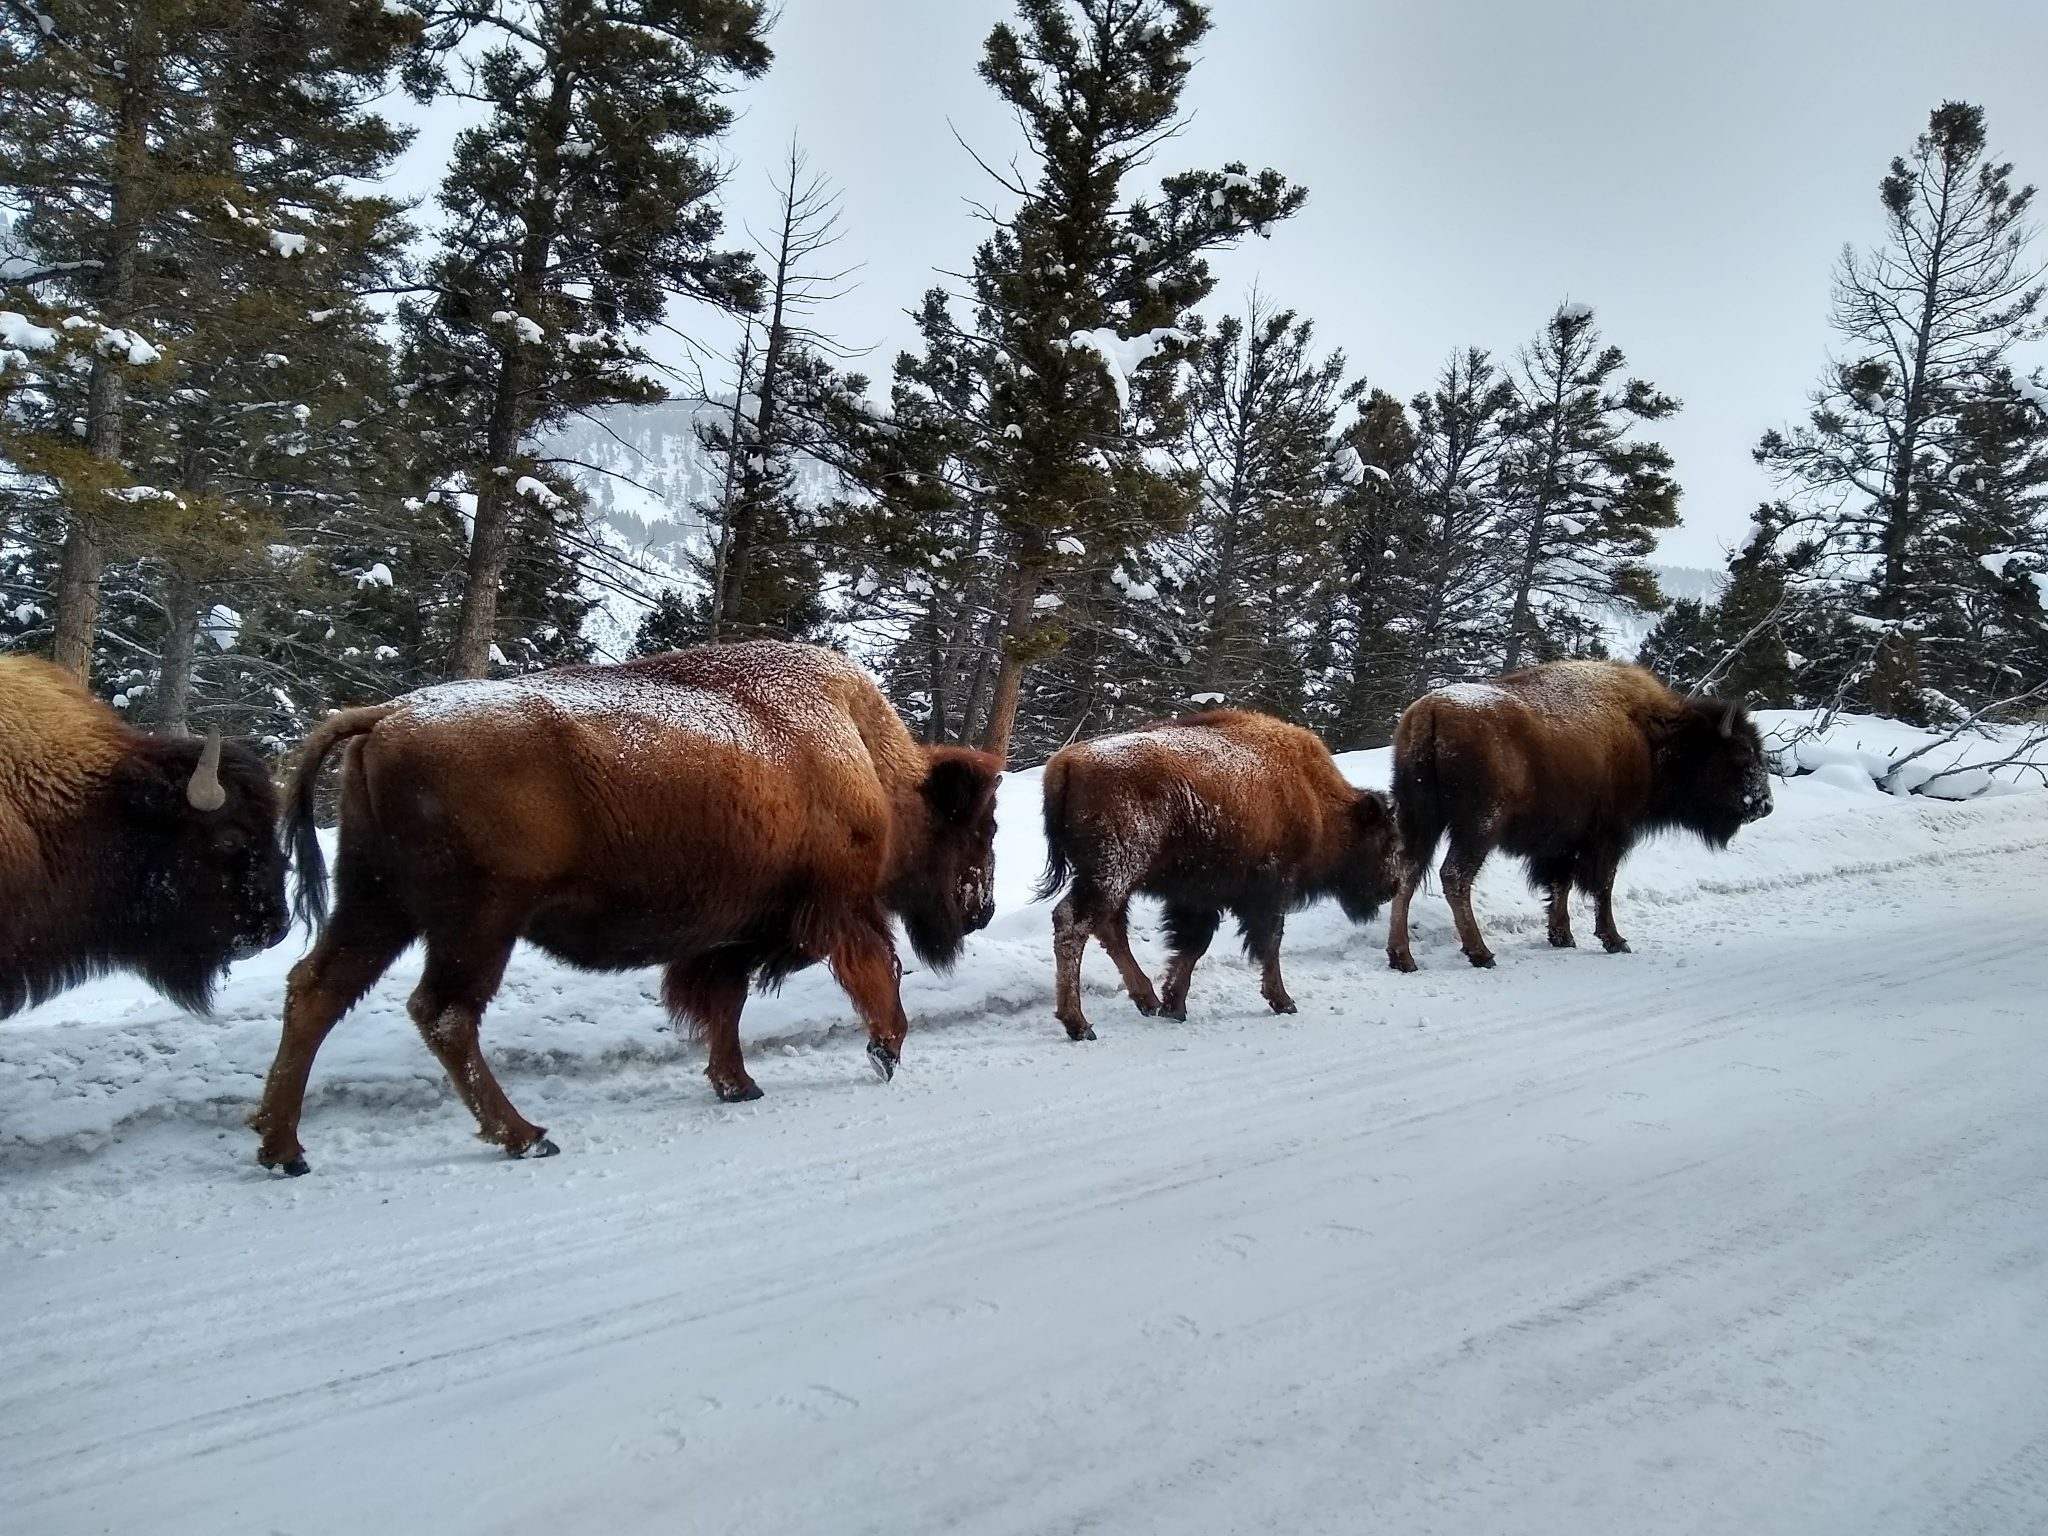 Bison walk along a snowy road through the forest